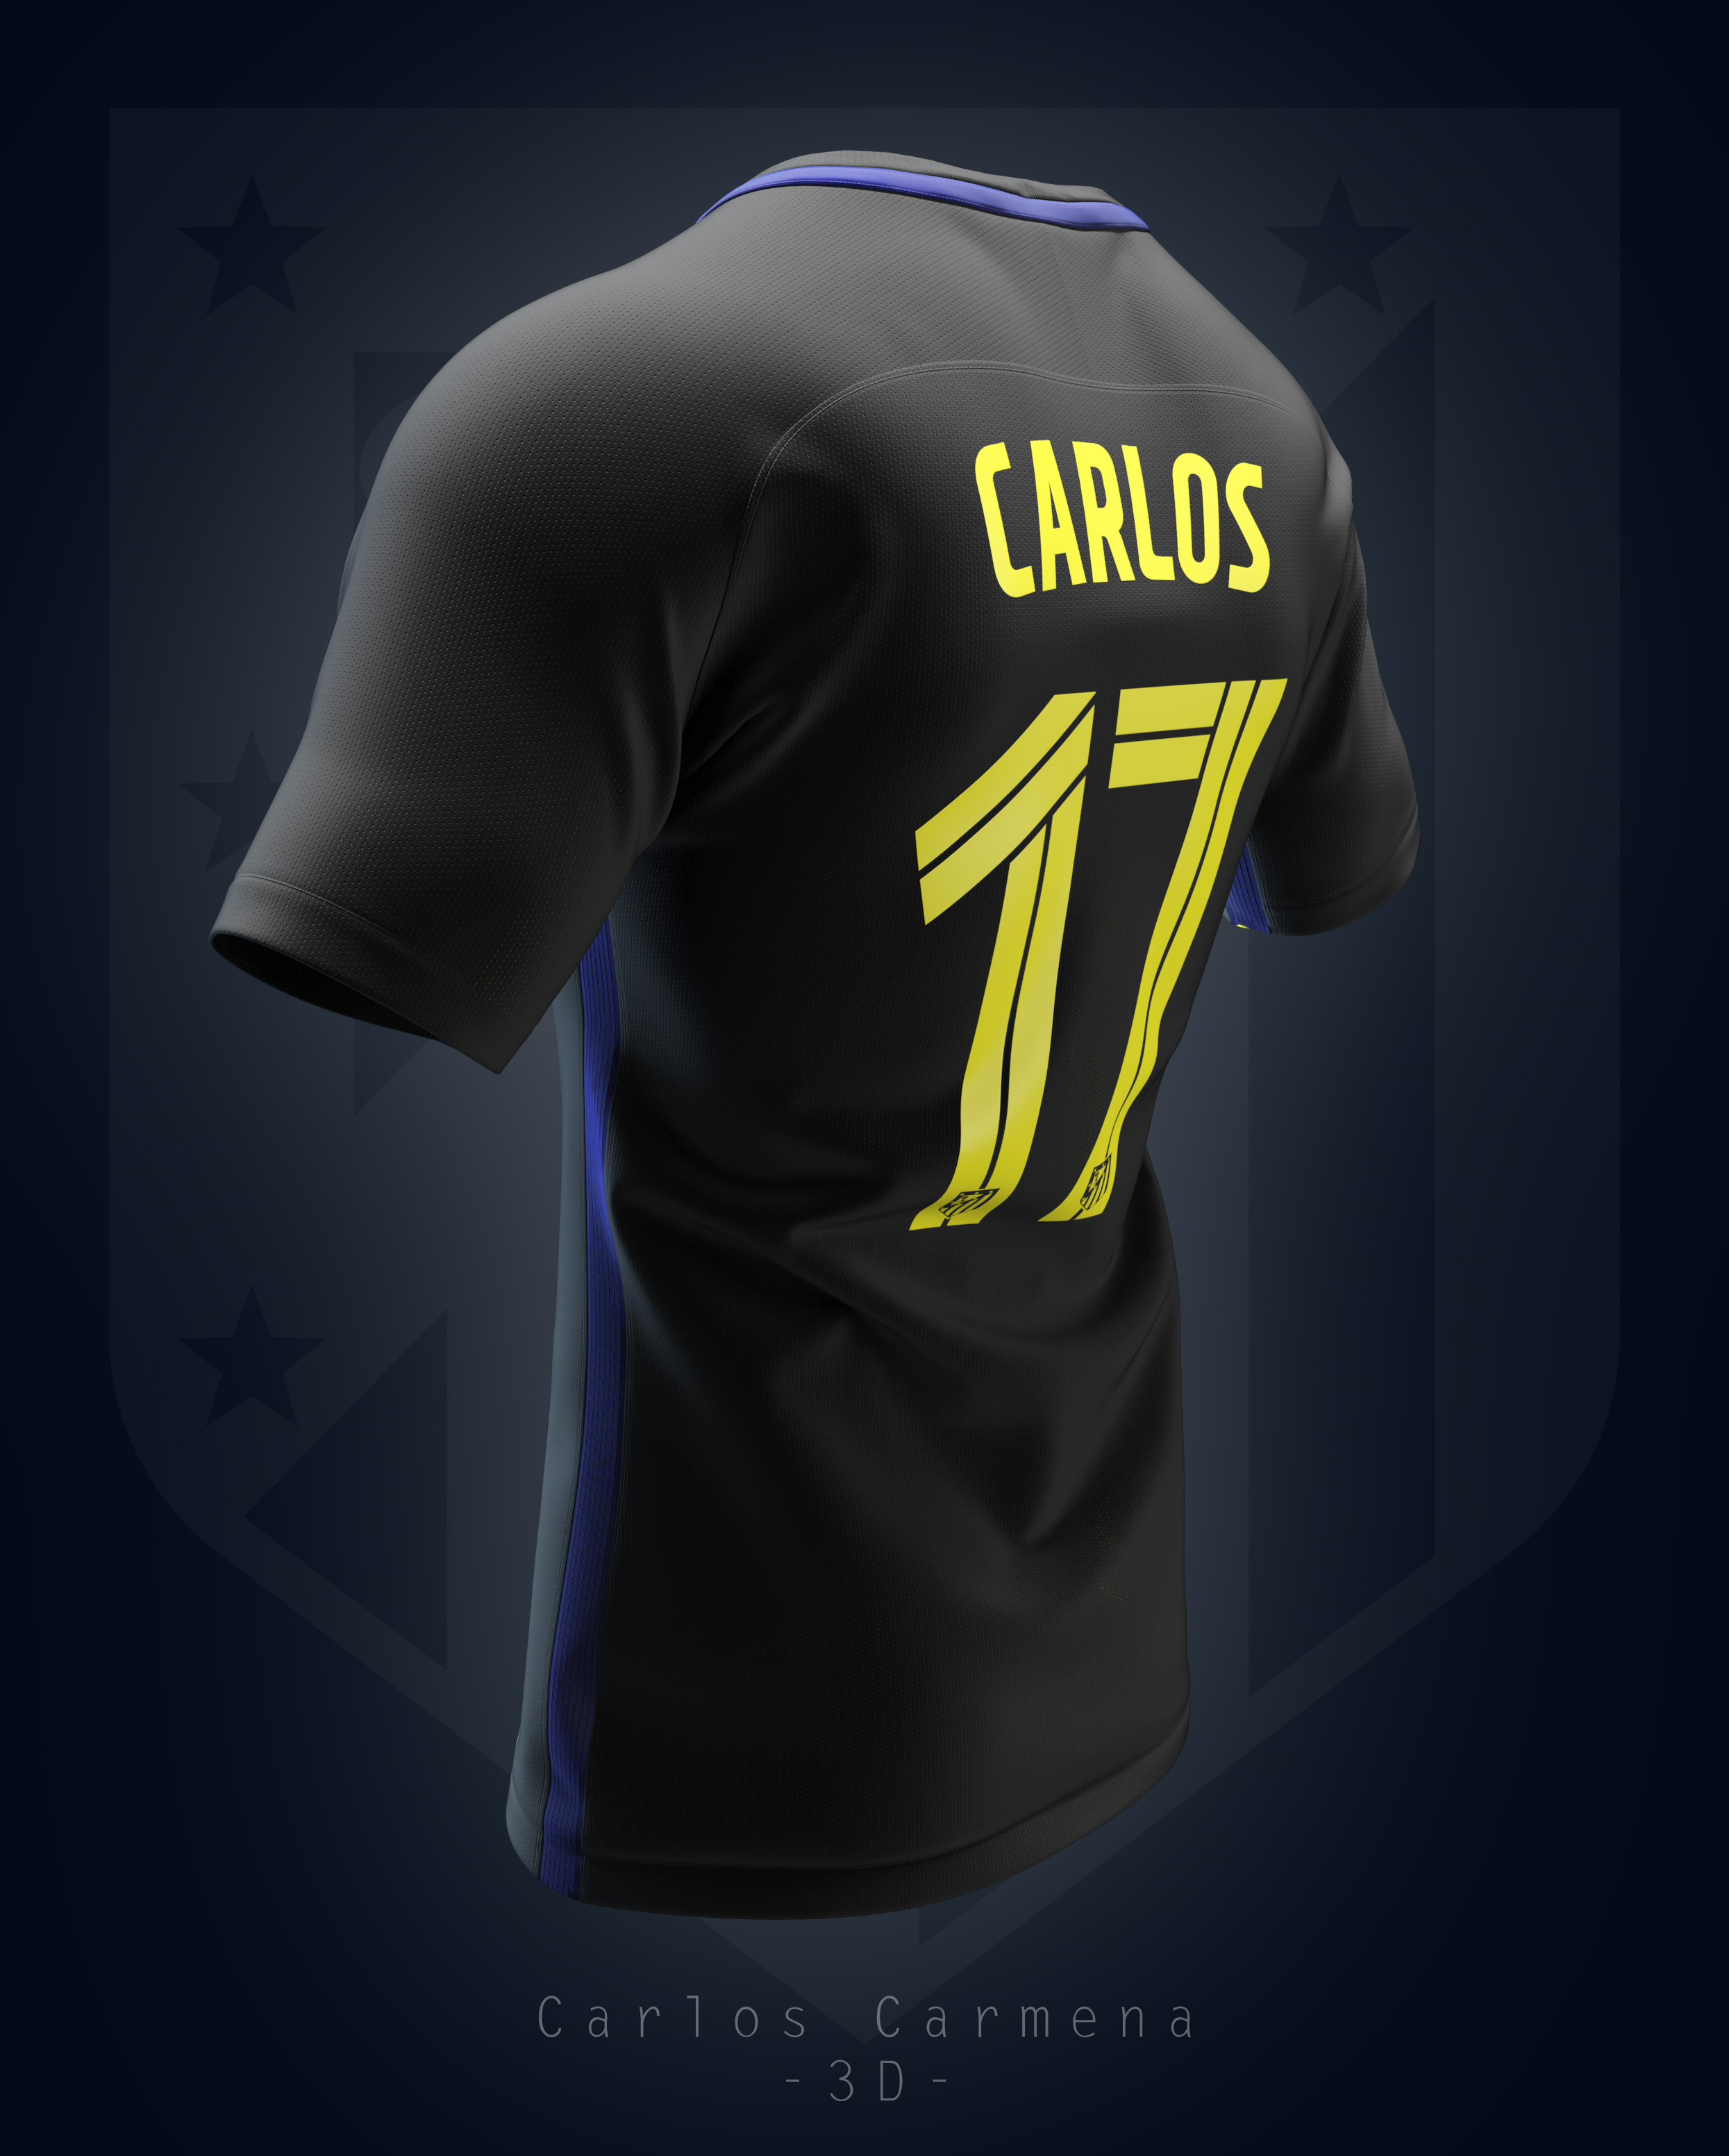 Atlético de Madrid away shirt